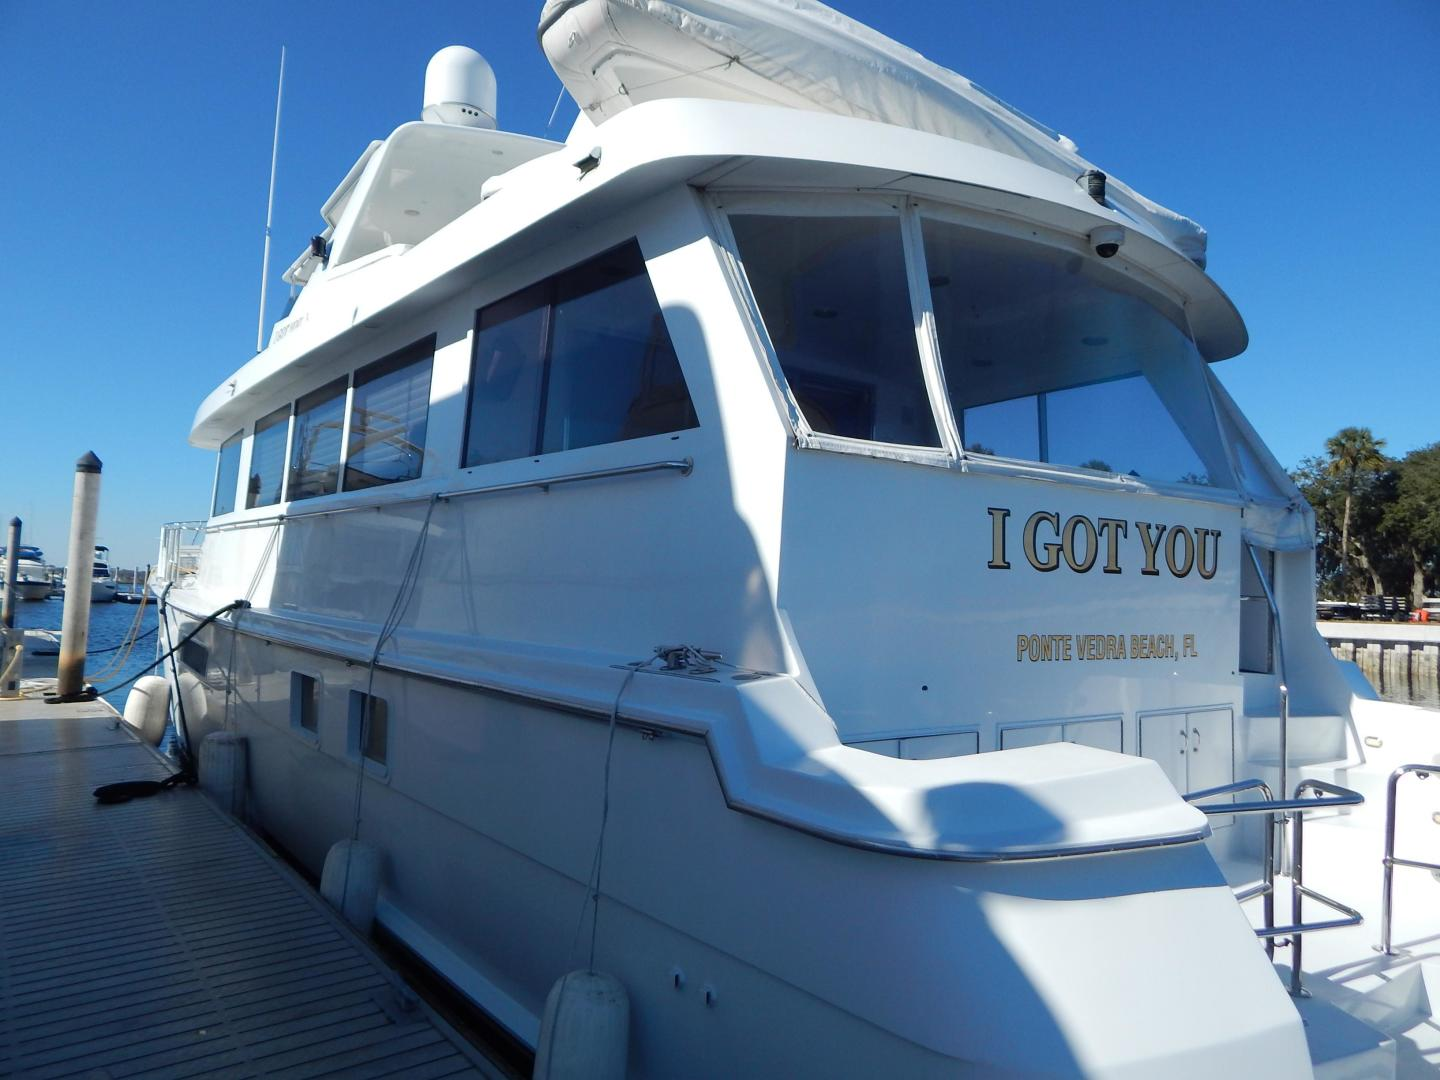 Hatteras-Sport Deck Motor Yacht 1998-I GOT YOU Jacksonville Beach-Florida-United States-1582435 | Thumbnail